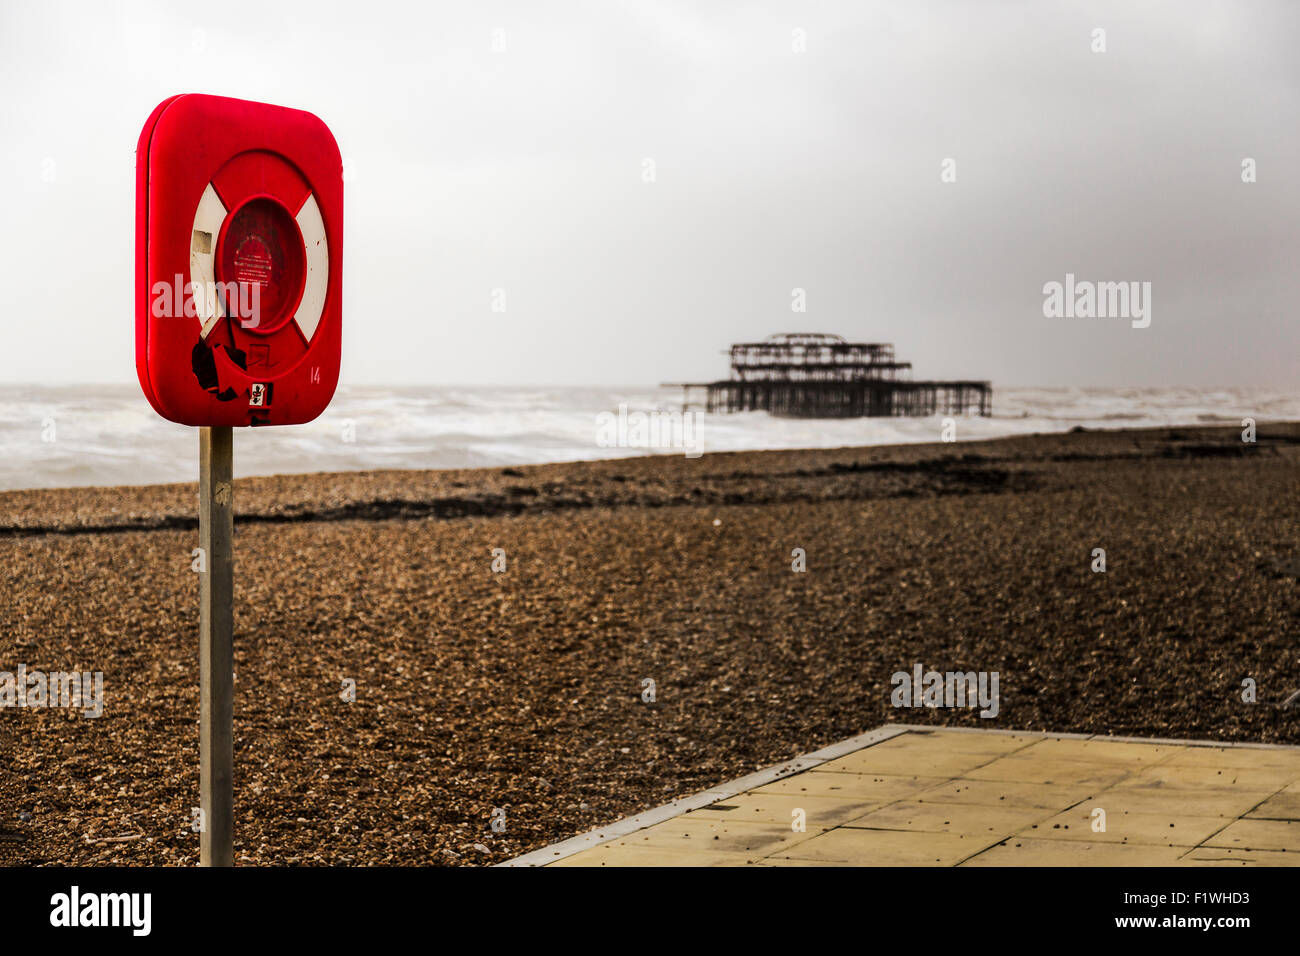 Brighton seaside. - Stock Image